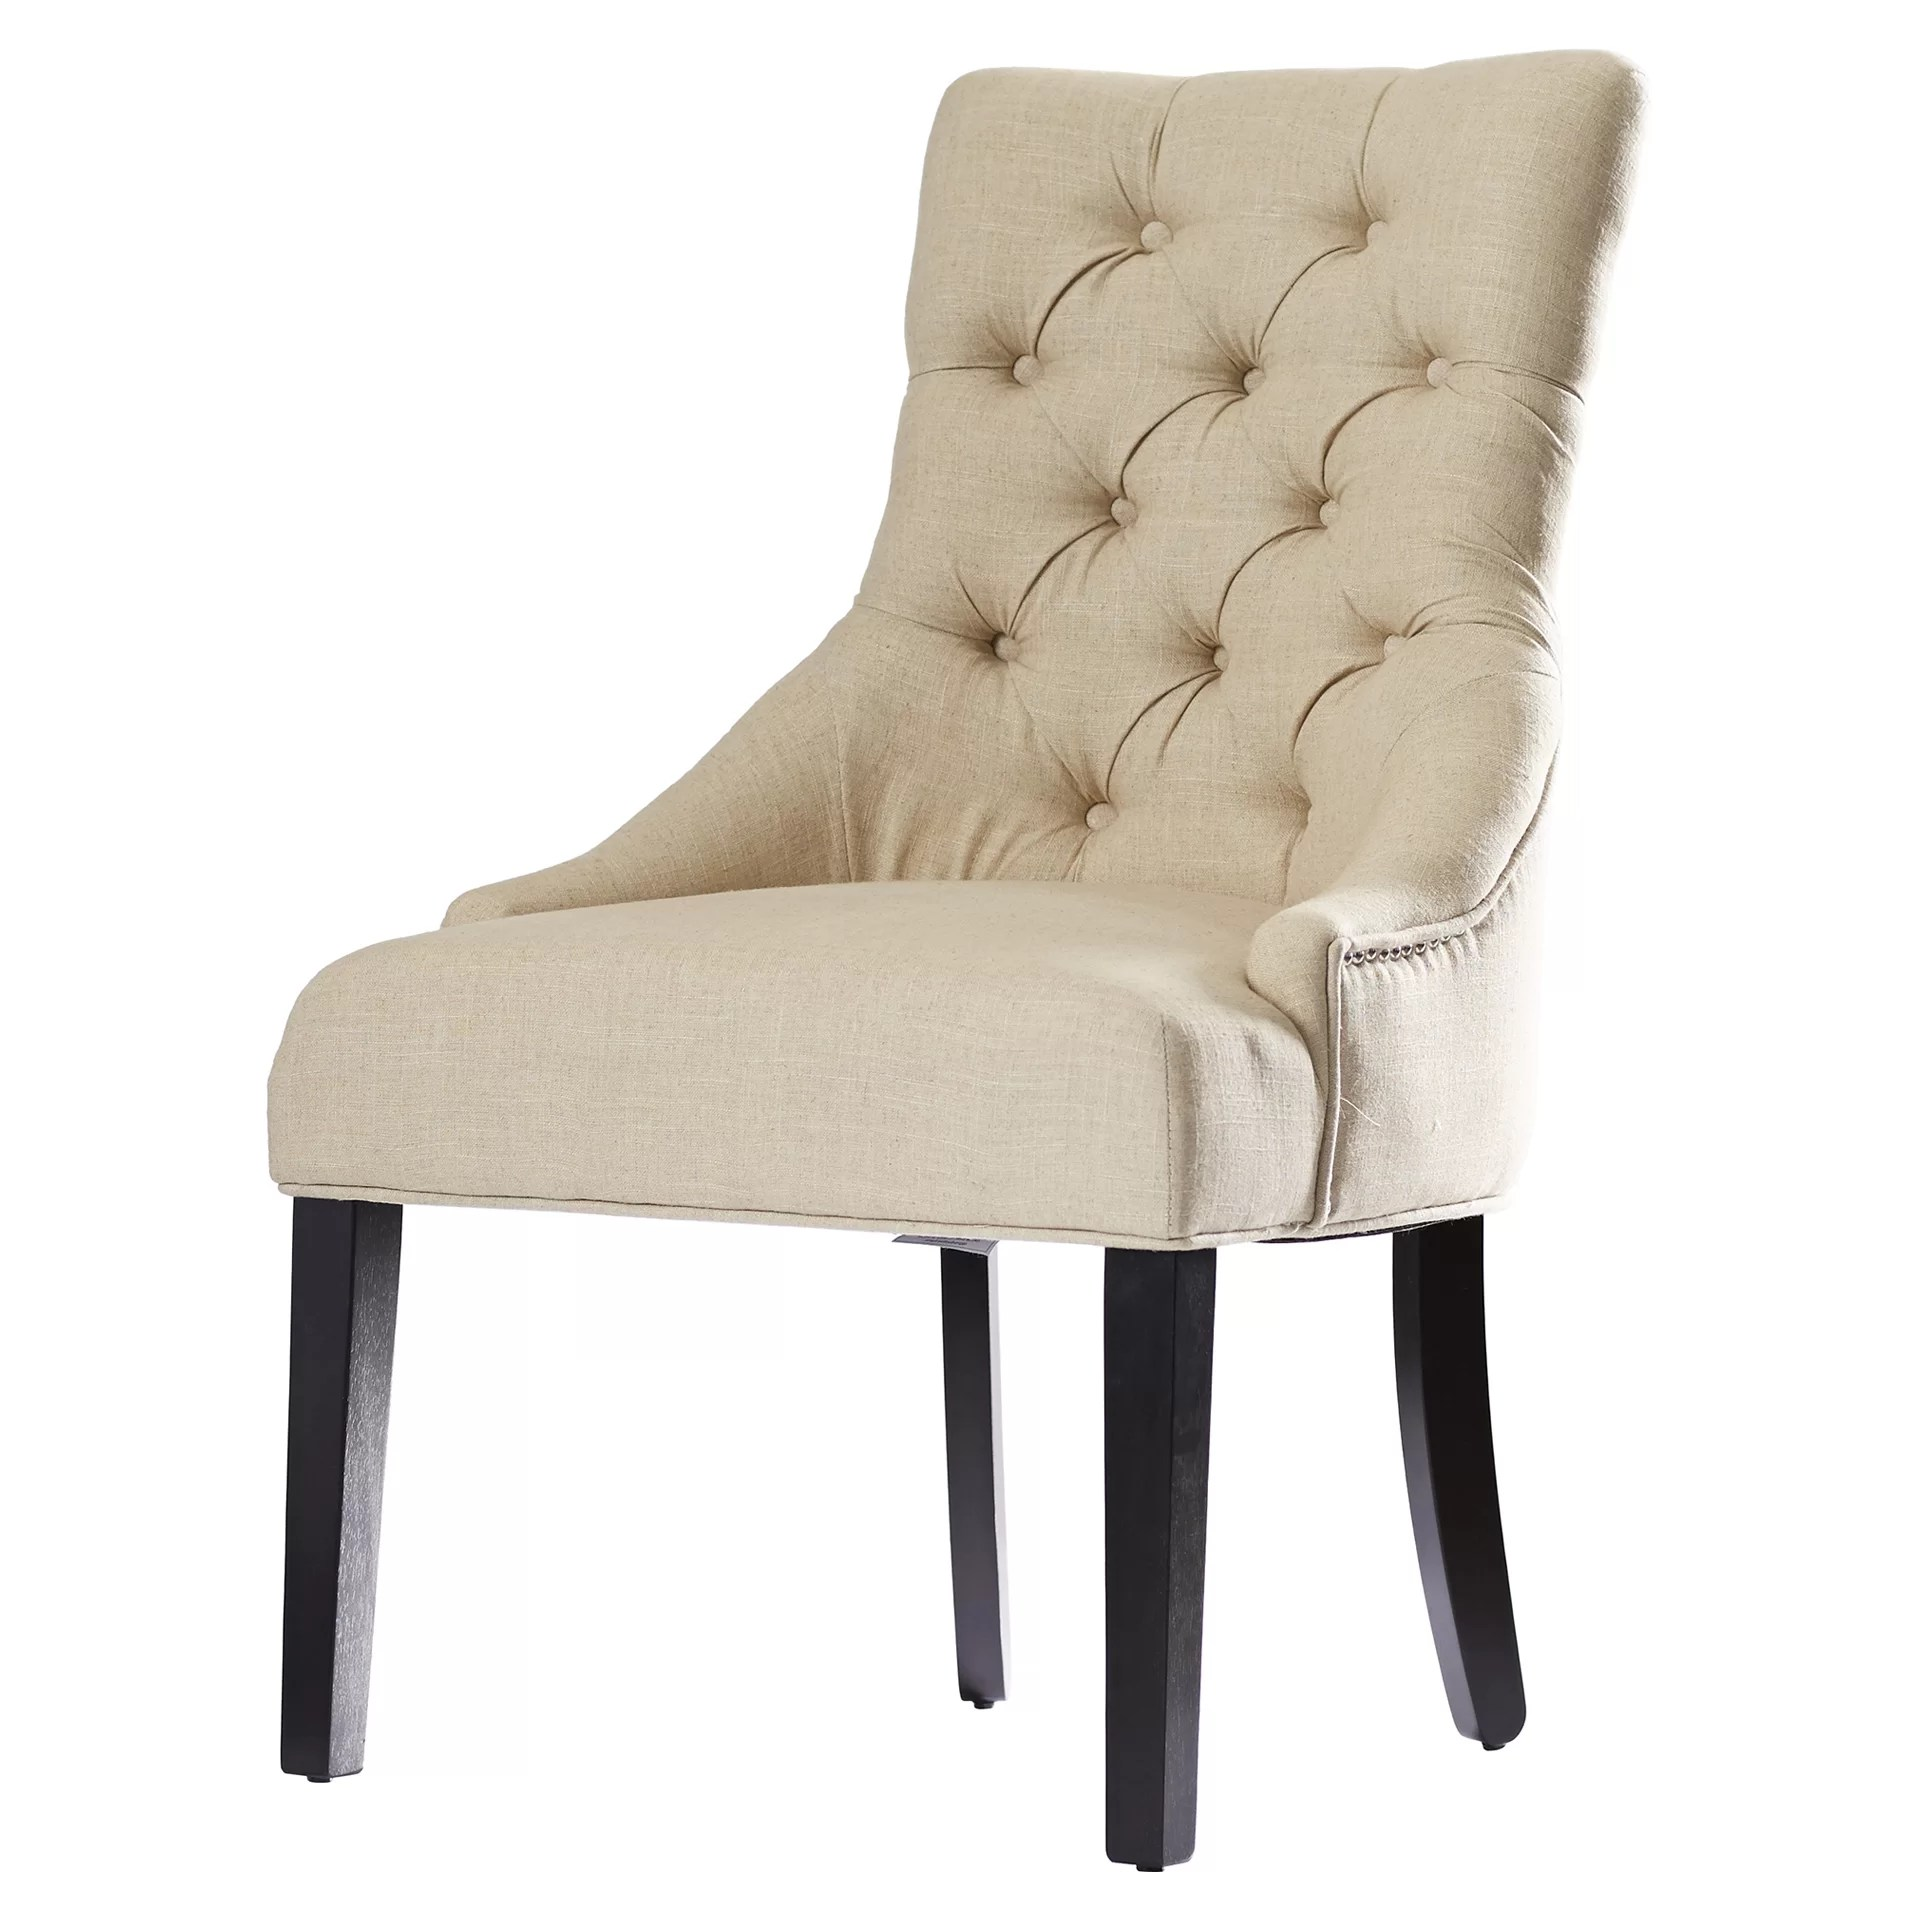 tufted nailhead chair optometry and stand for sale house of hampton jodie parsons